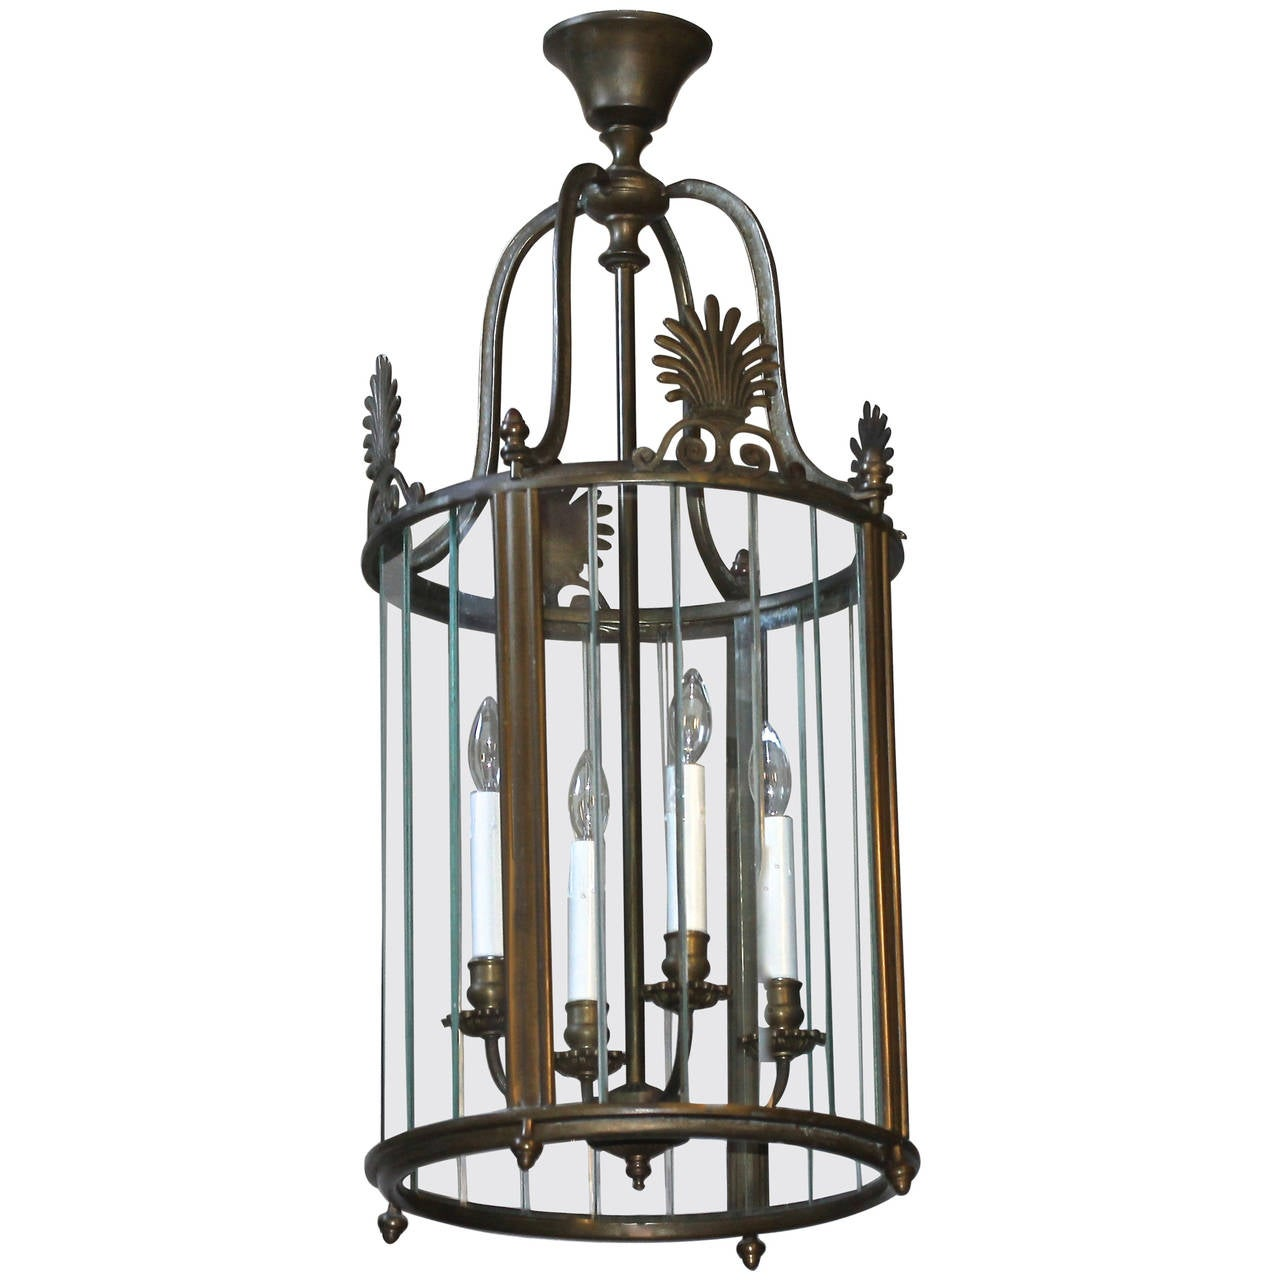 Large Italian Neoclassic Bronze Hall Lantern Pendant Light